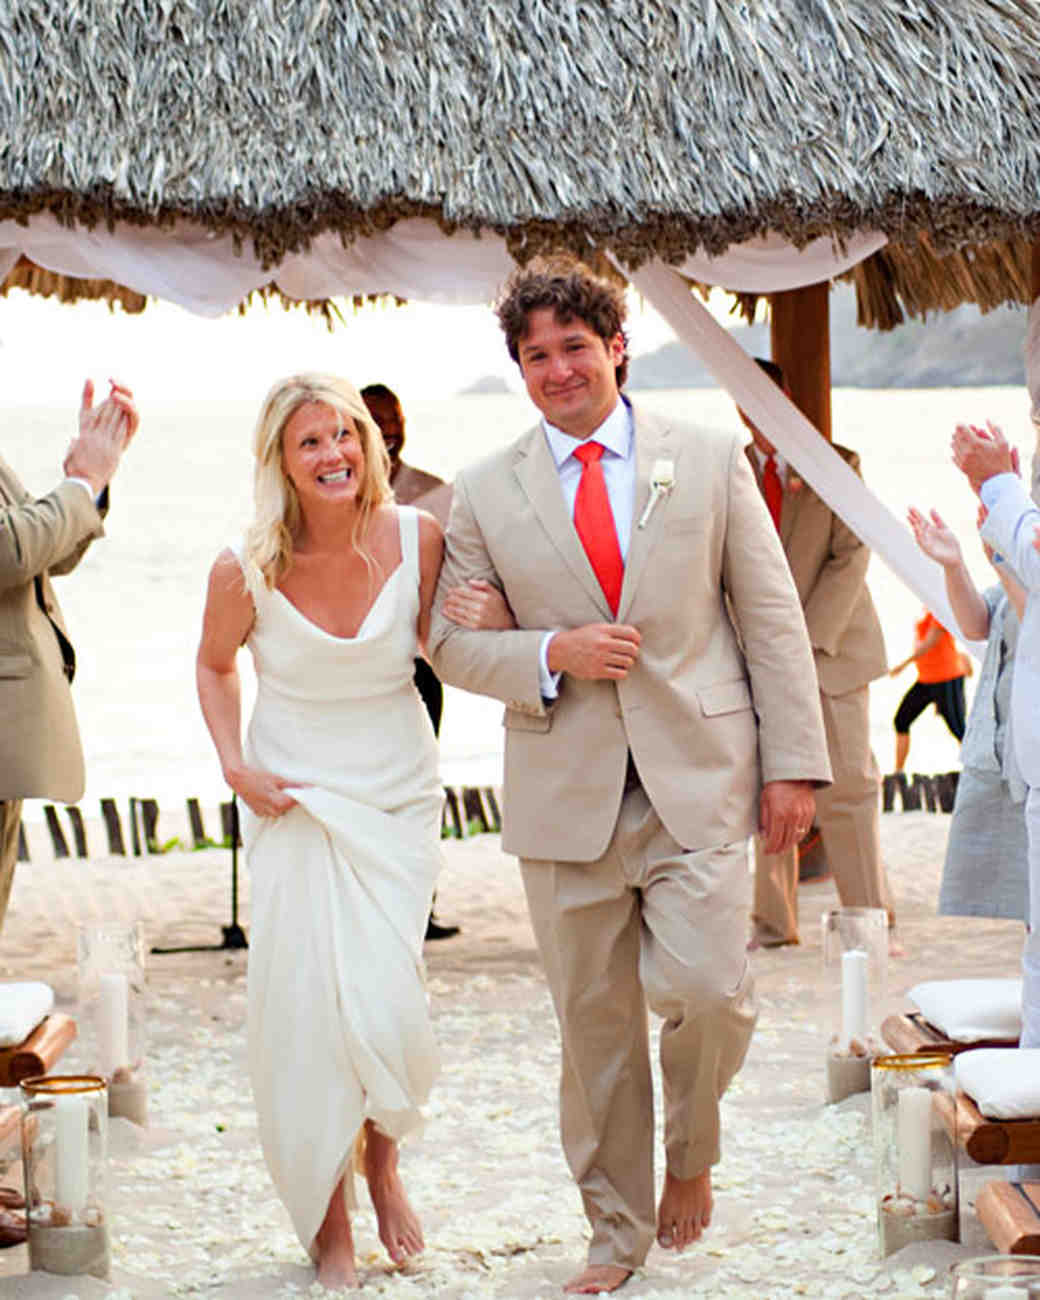 Weddings In Mexico: An Orange-and-White Intimate Beach Destination Wedding In